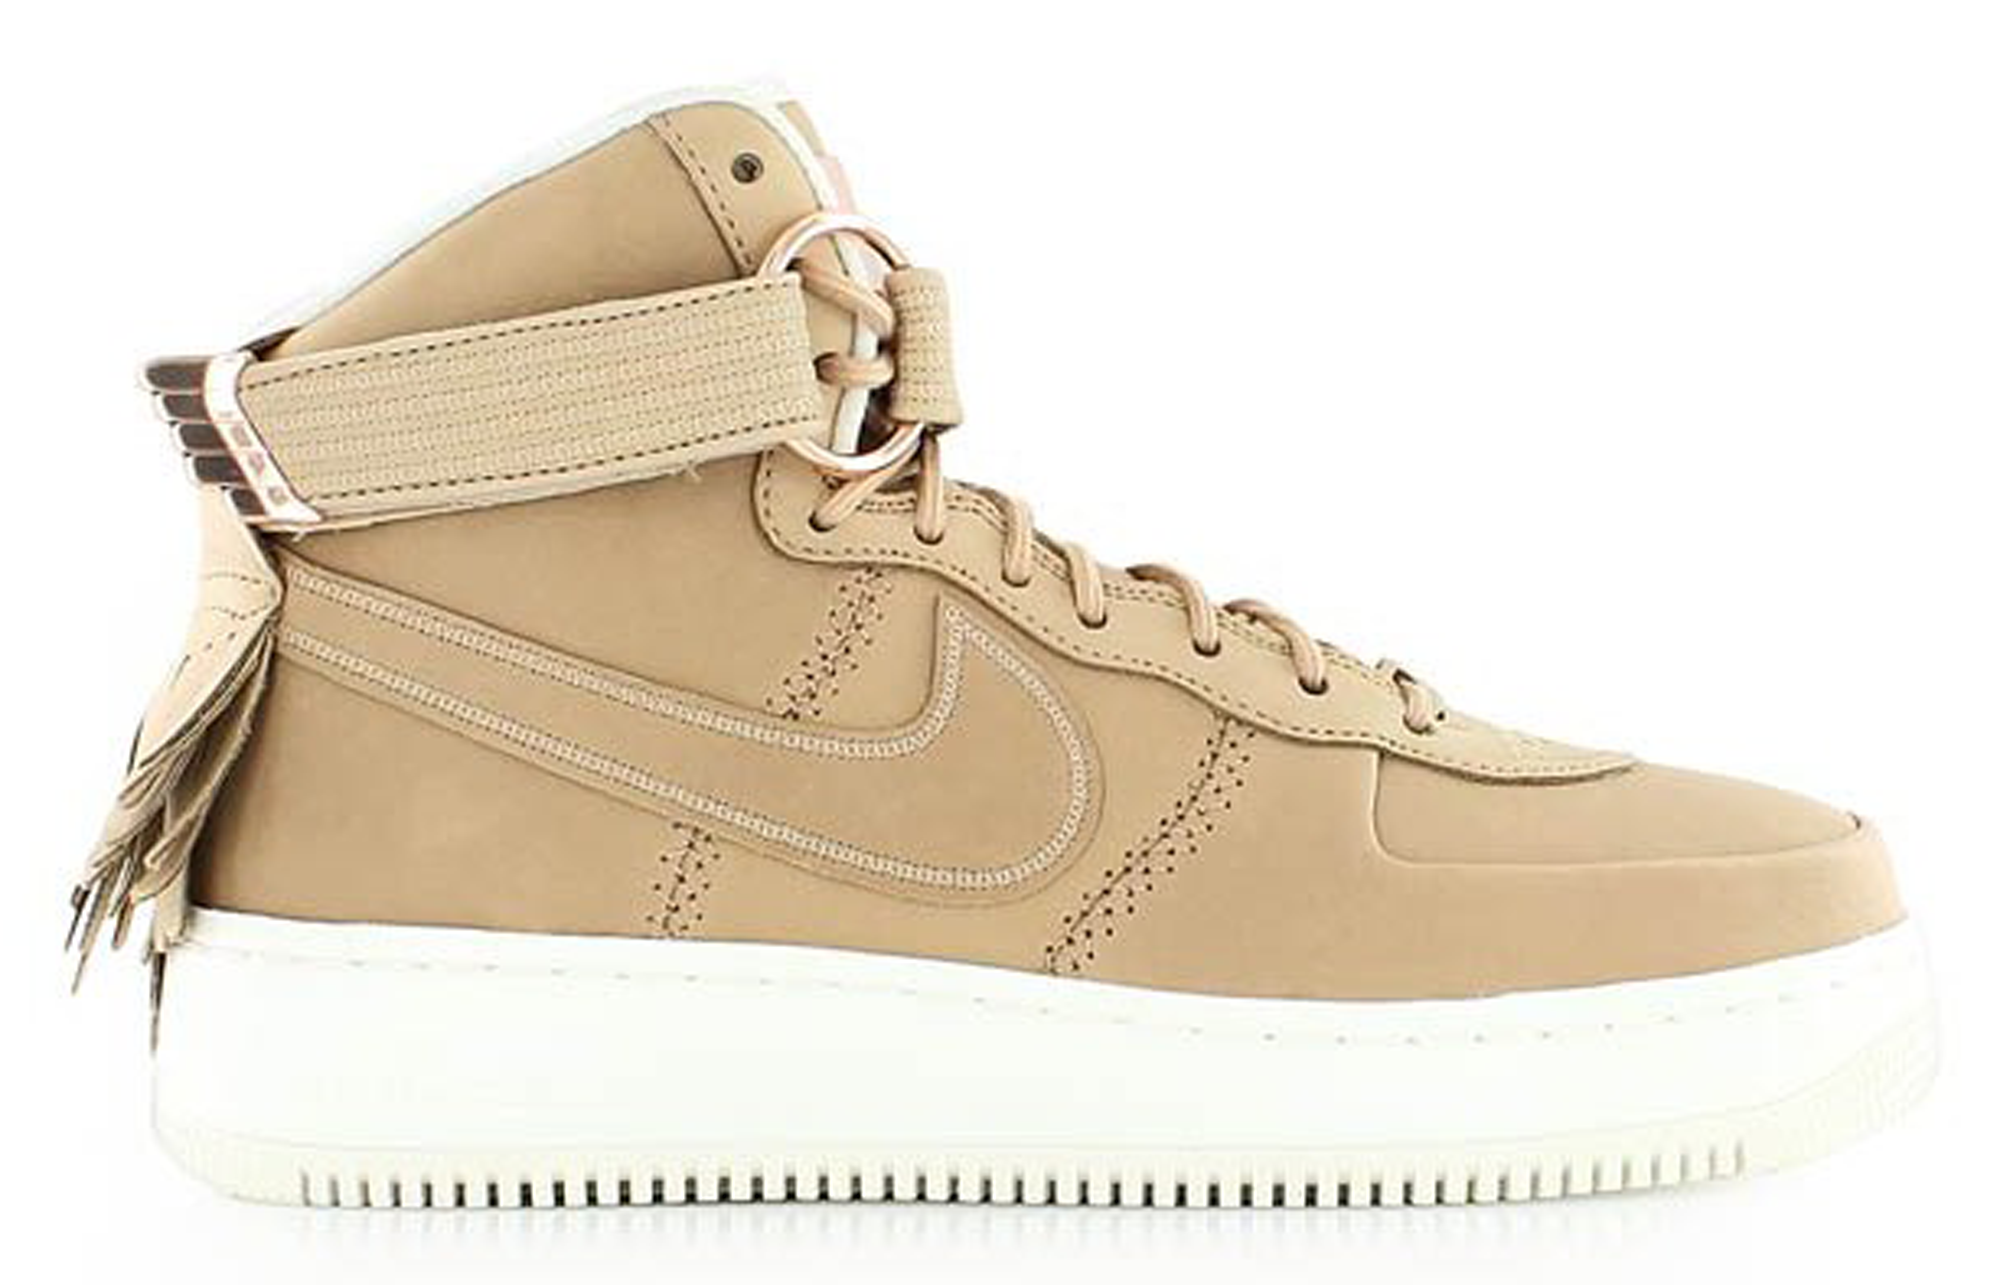 Nike SF Air Force 1 Special Force QS Allstar DUST MOONROCK